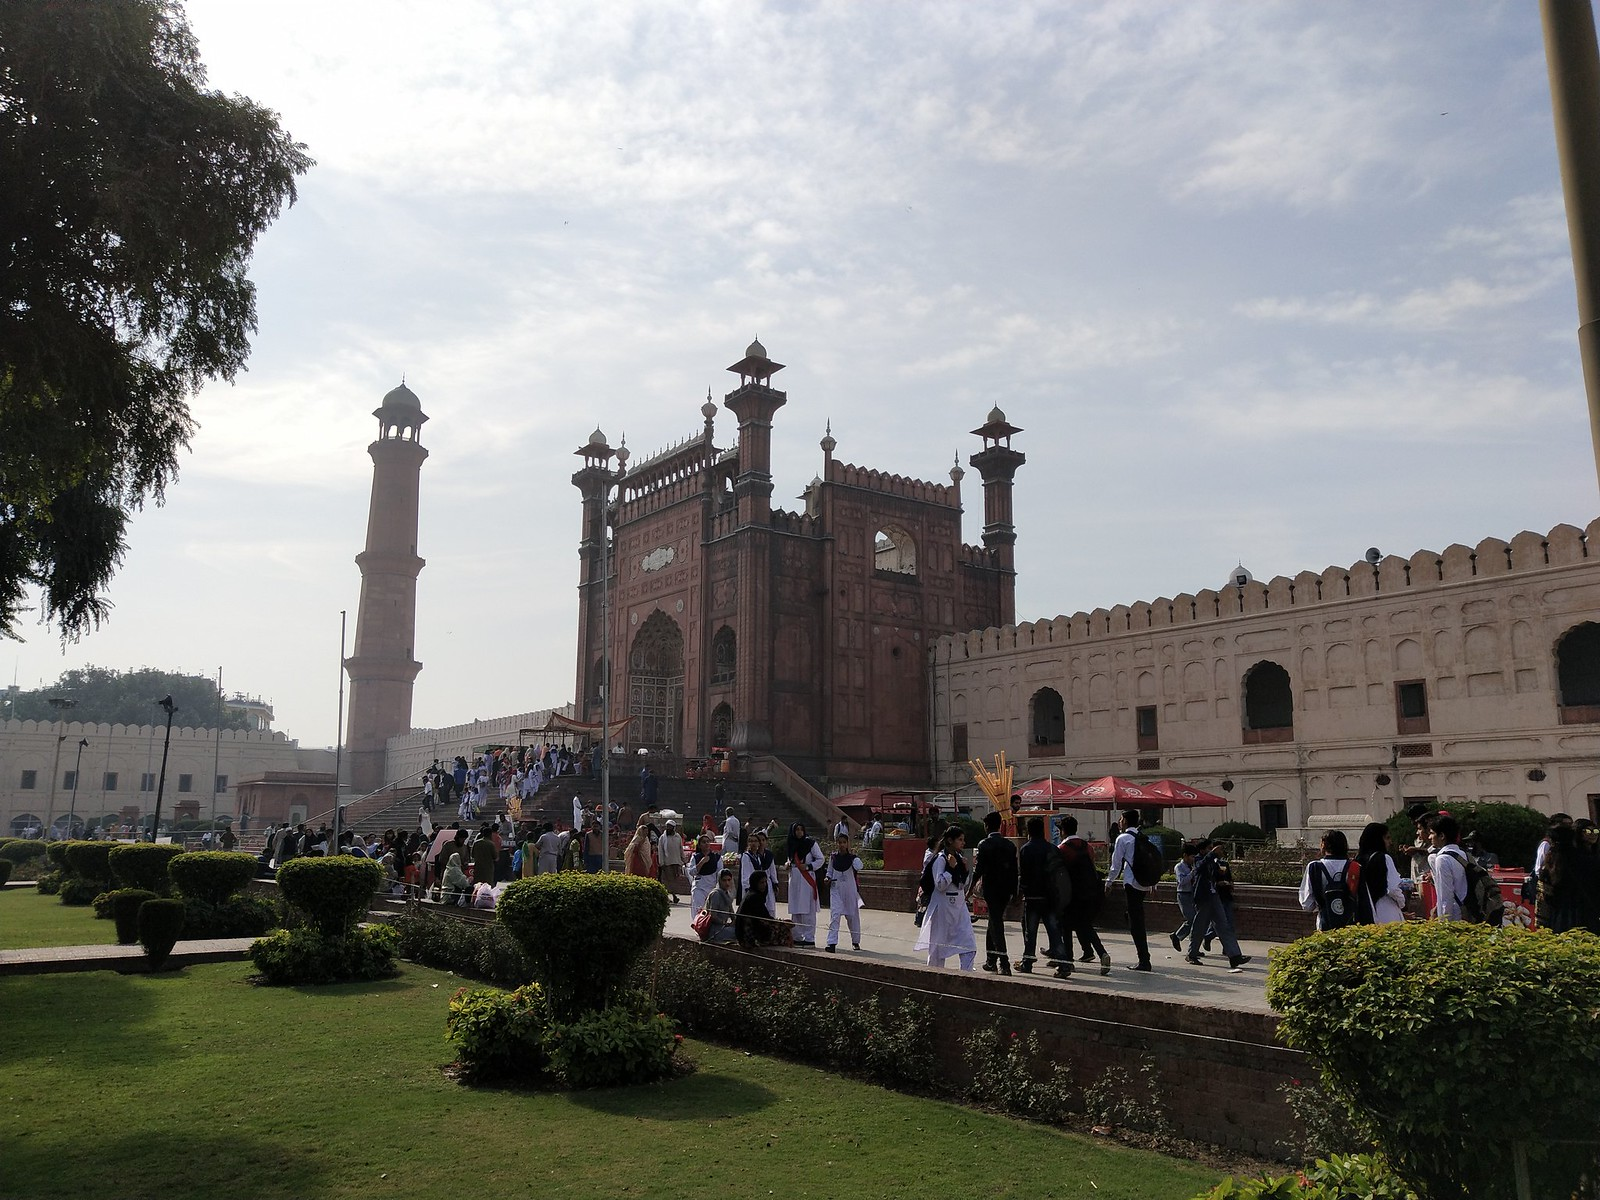 Badshahi Mosque Picture with Auto Mode on Vivo V11 Pro